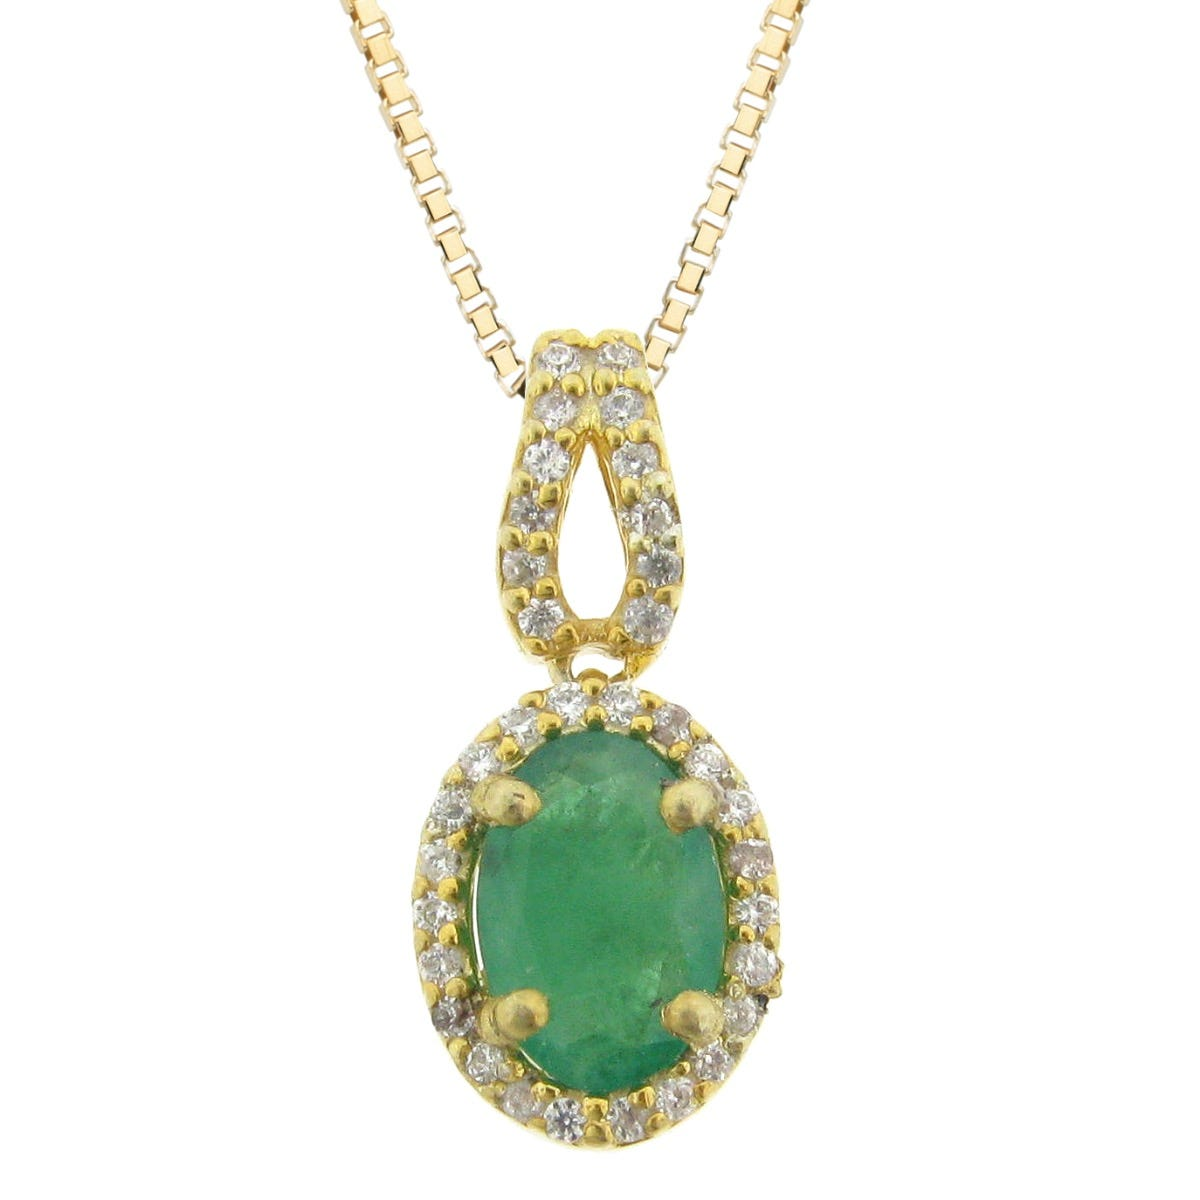 Emerald and Diamond Pendant in 10K Yellow Gold